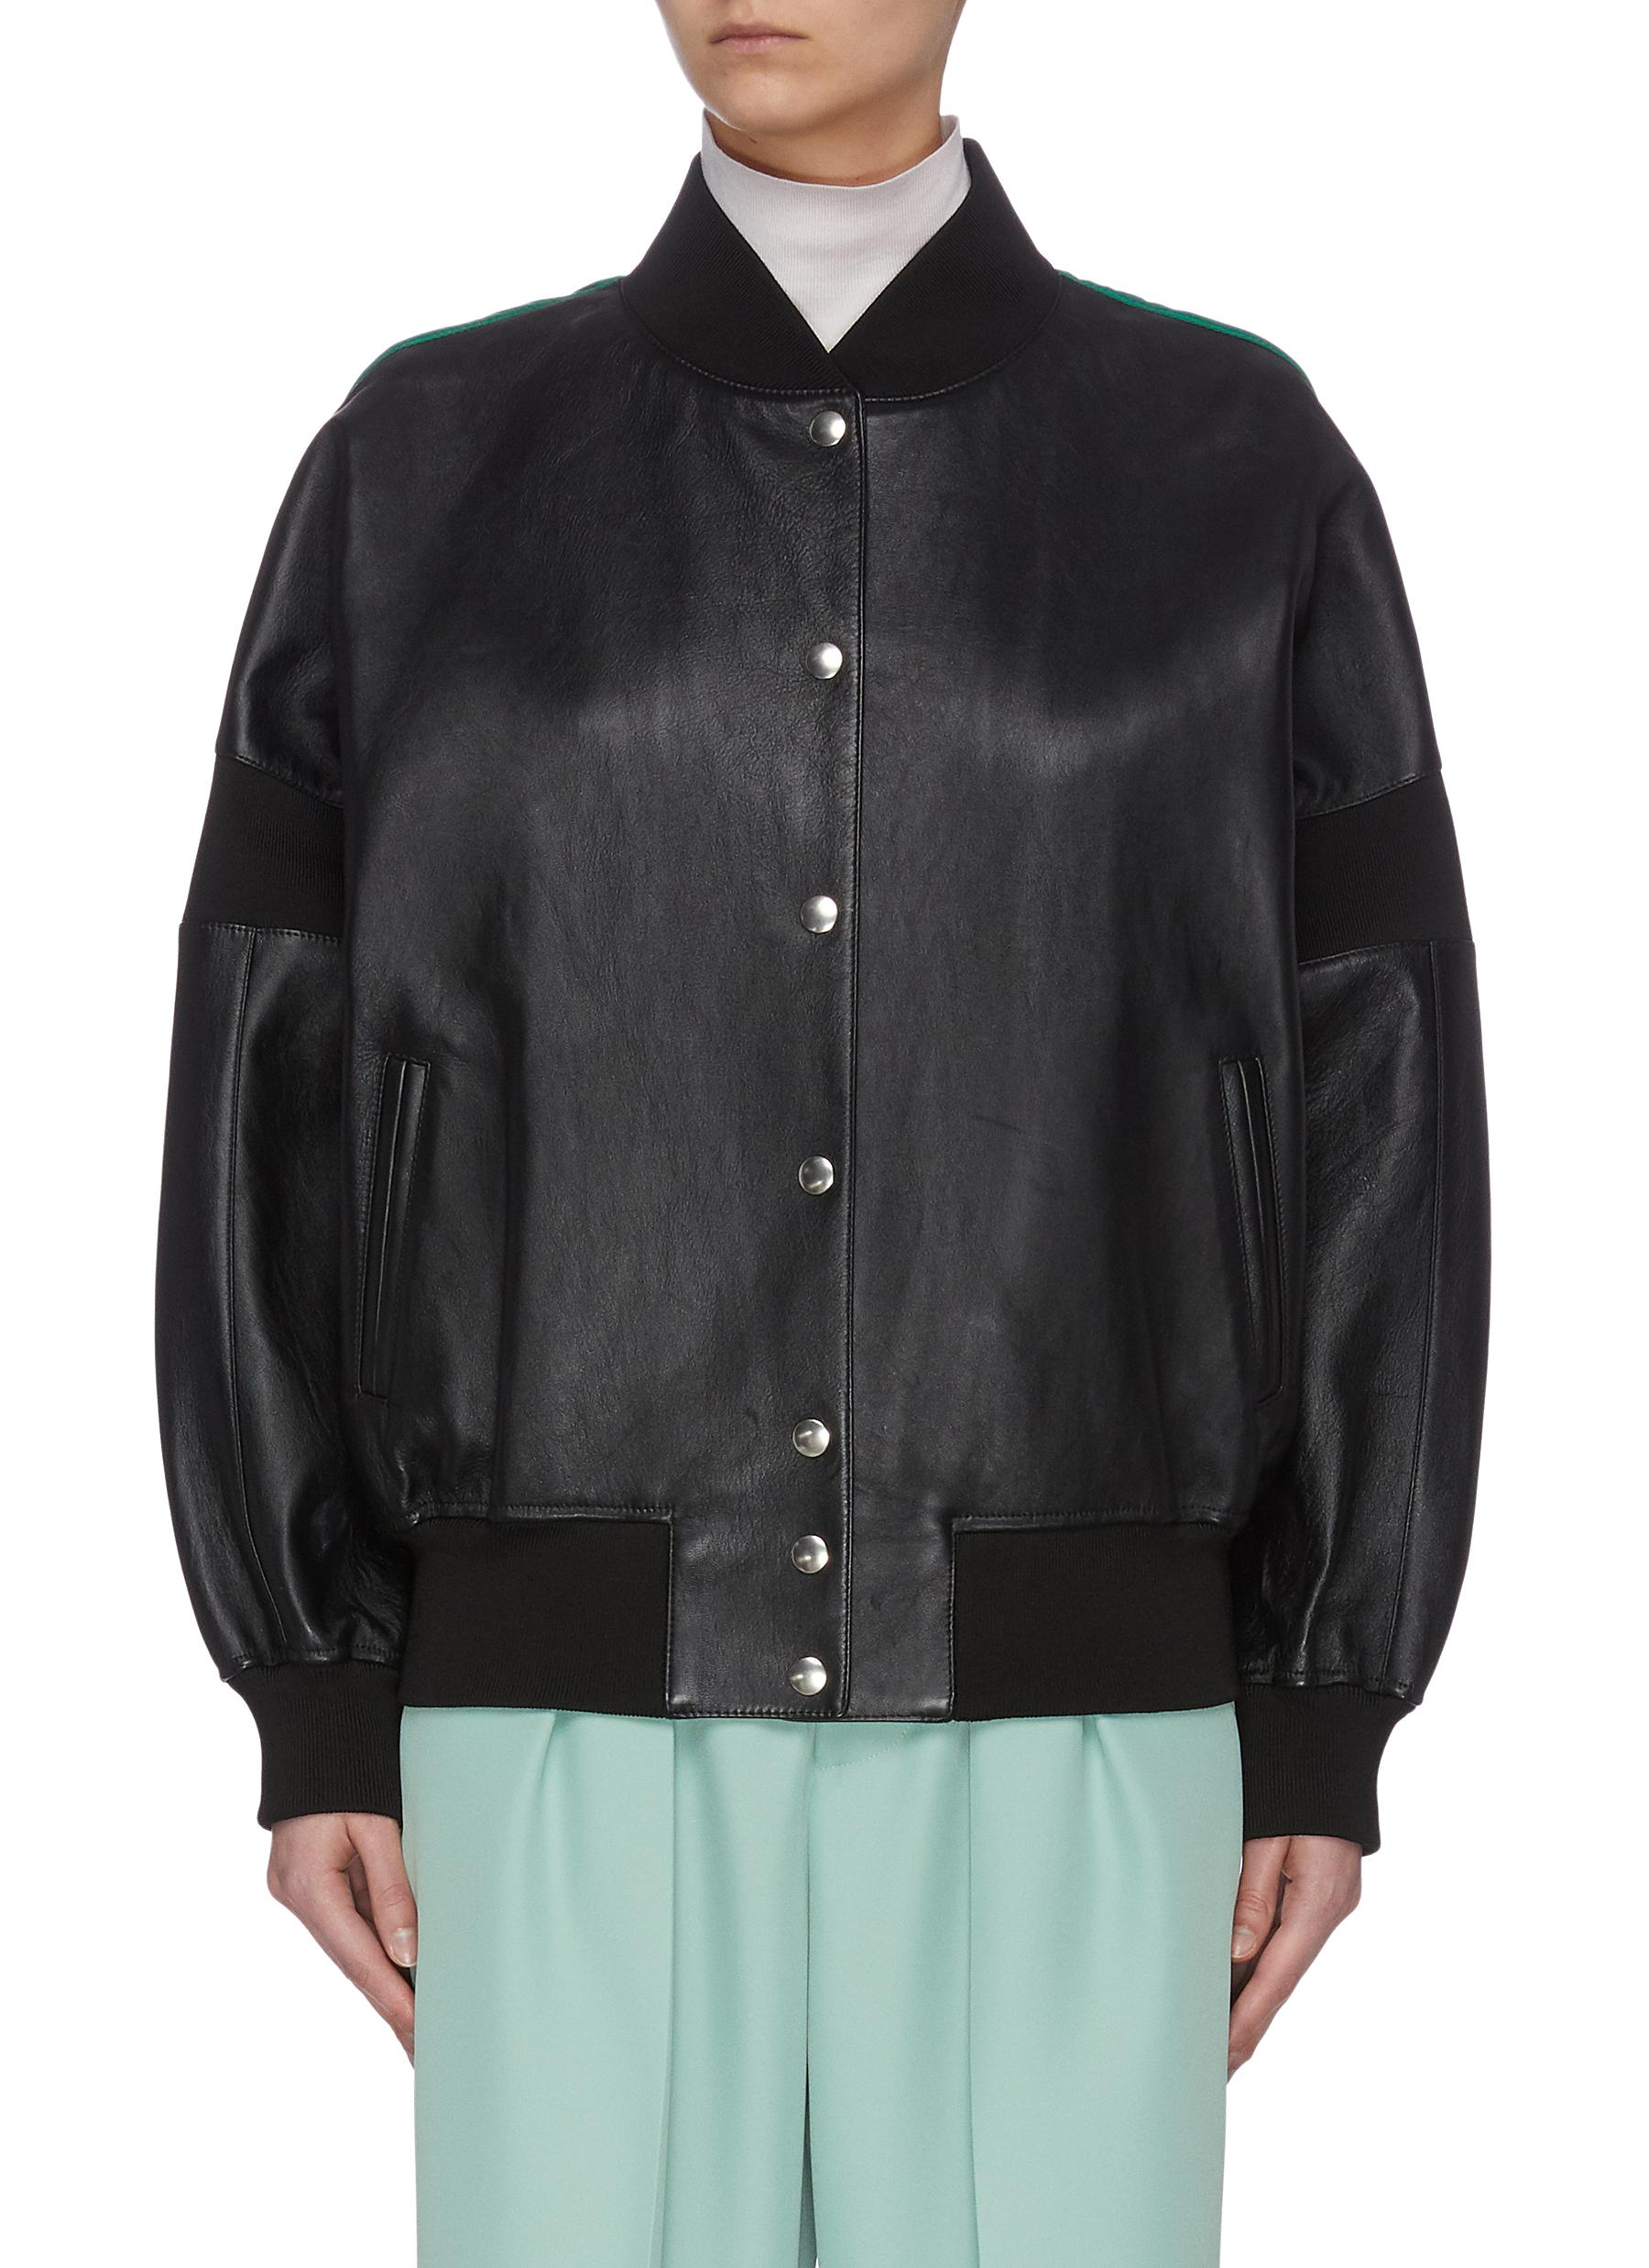 Buy Plan C Jackets Contrast Oversize Leather Baseball Jacket